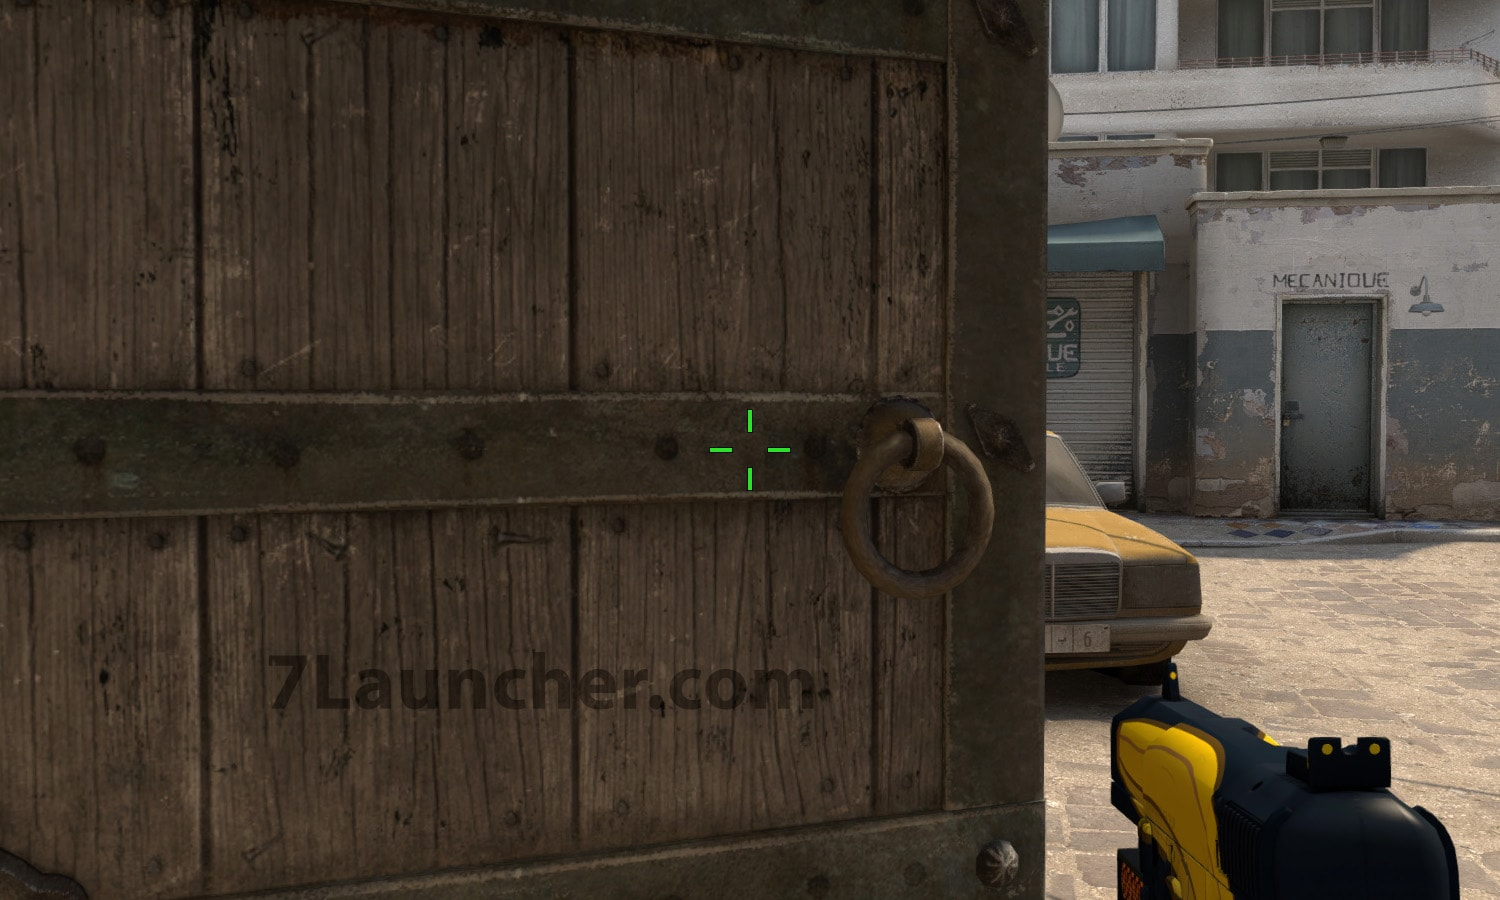 The crosshair without dot